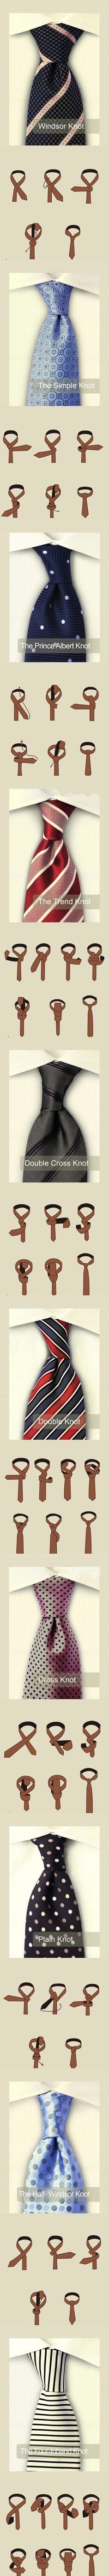 Windsor Knot.... Us ladies think this is VERY Classy...